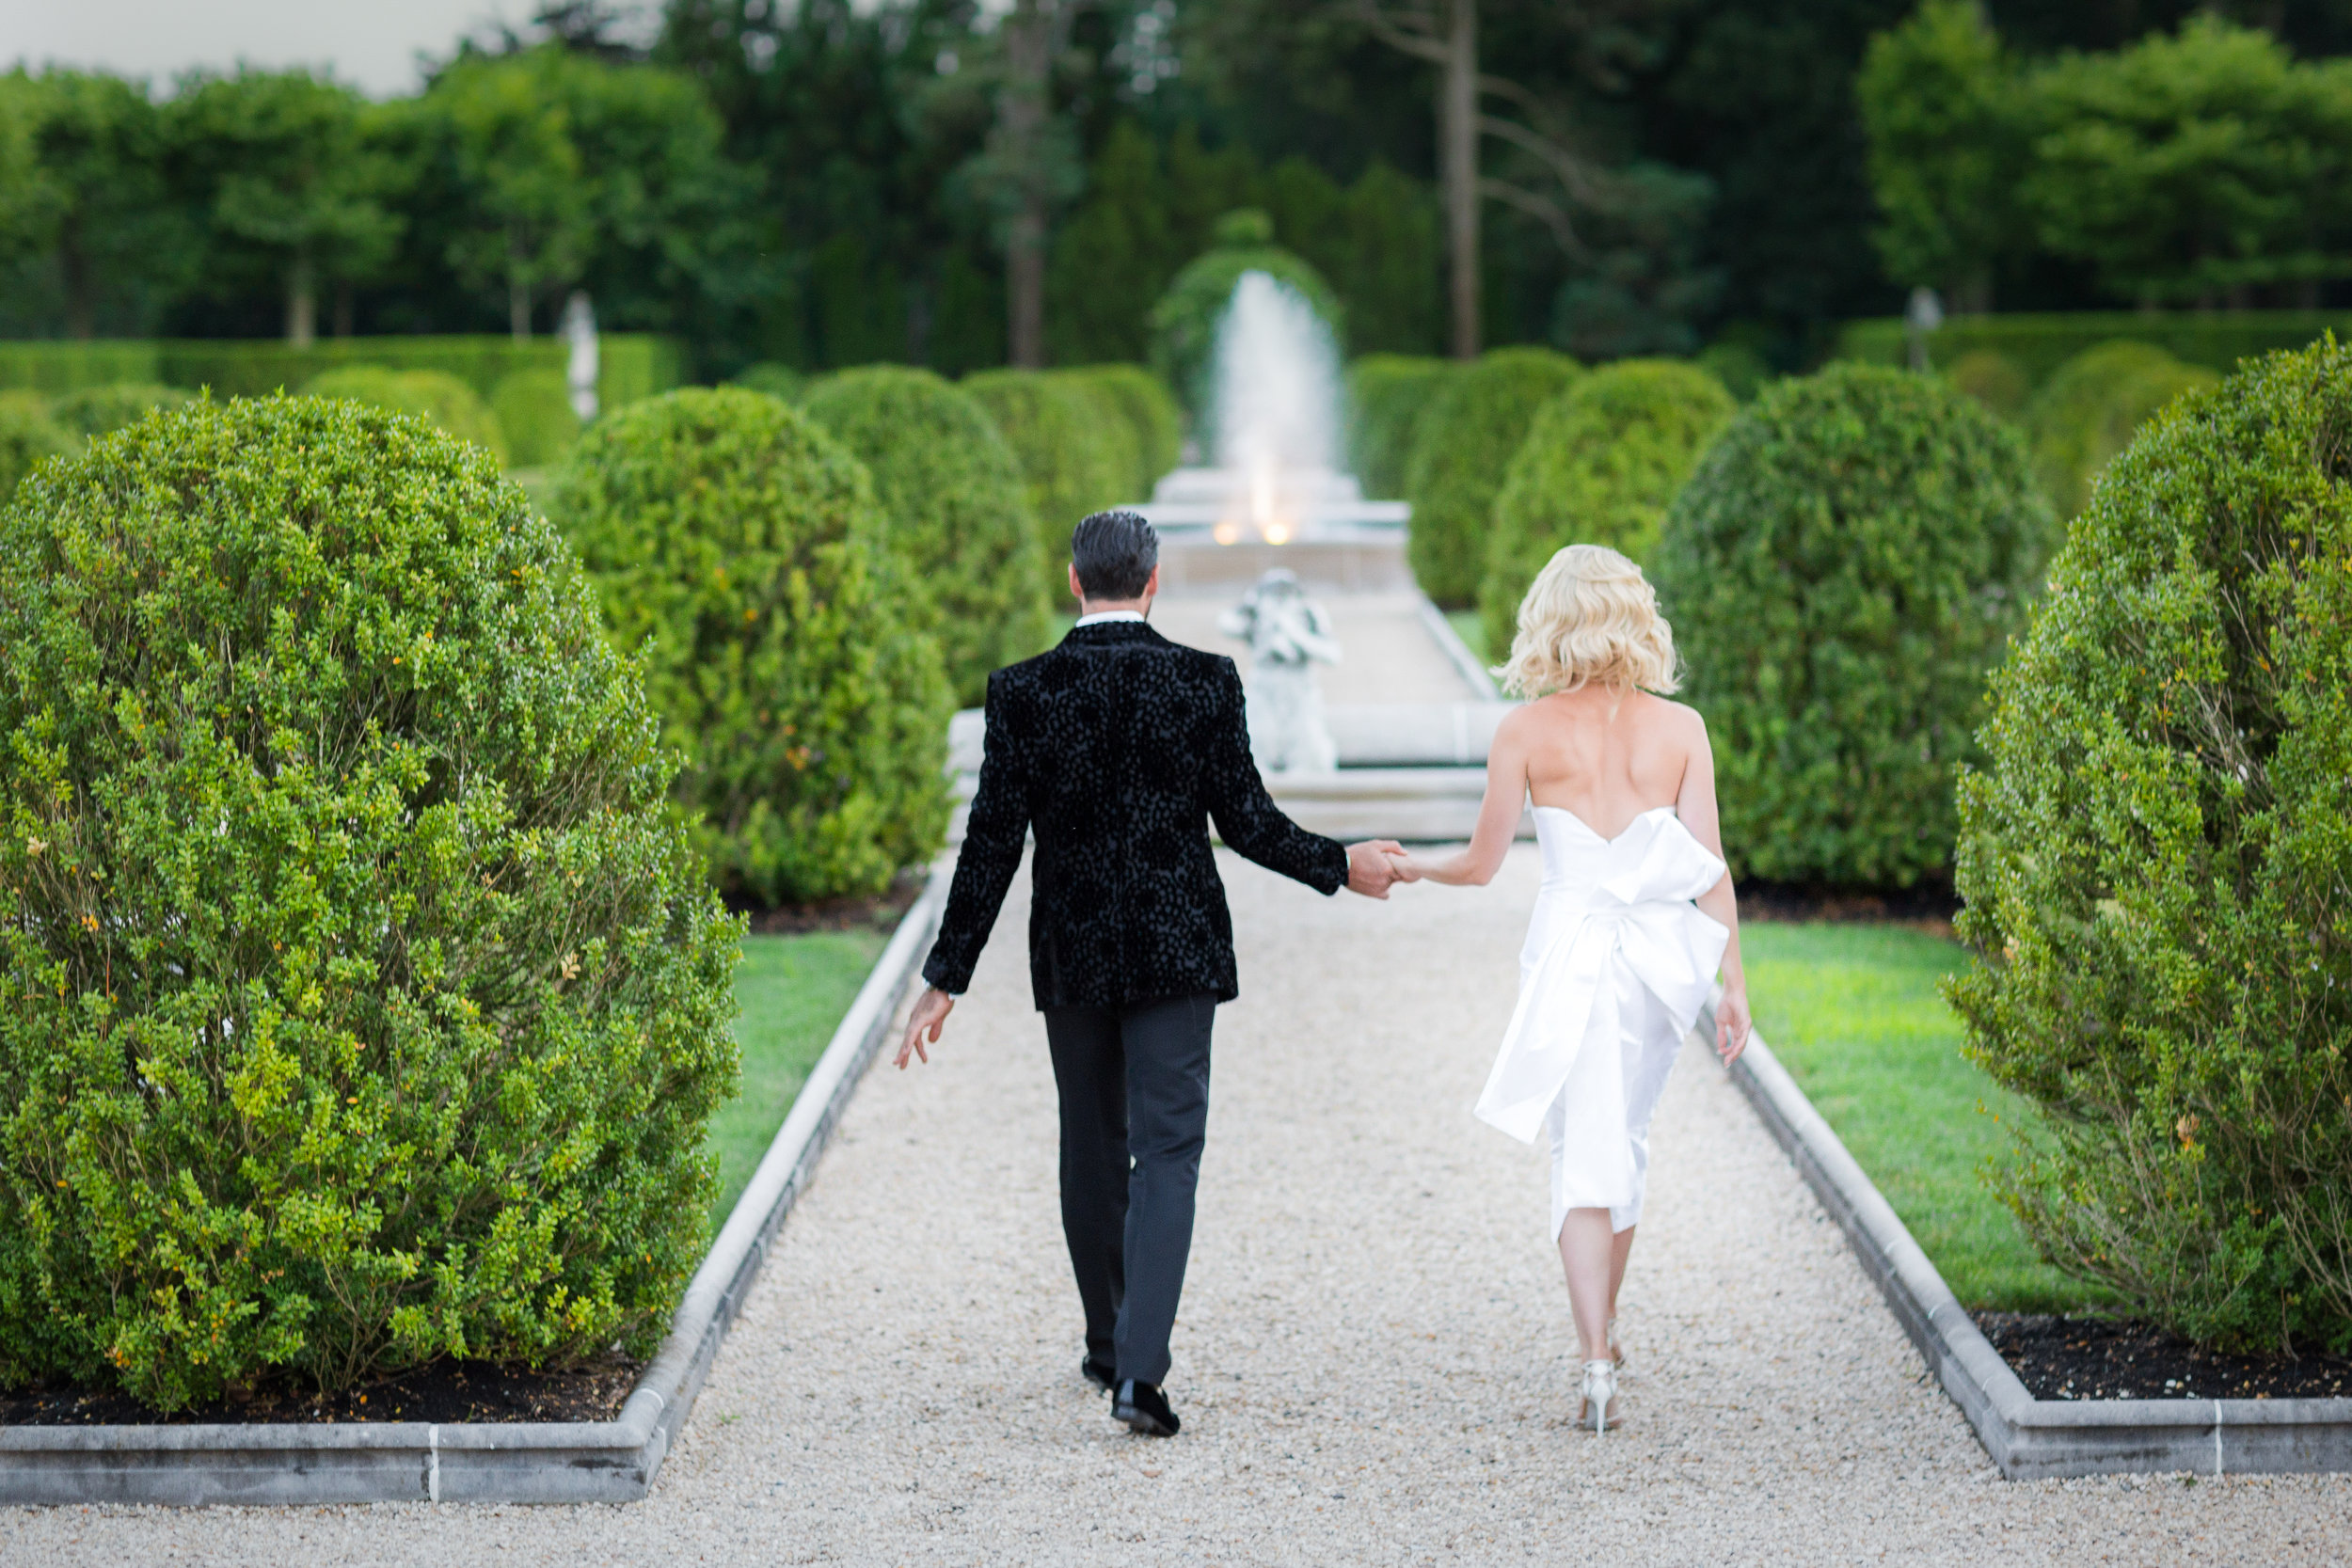 POheka Castle Dancing with the stars Wedding 001.jpg